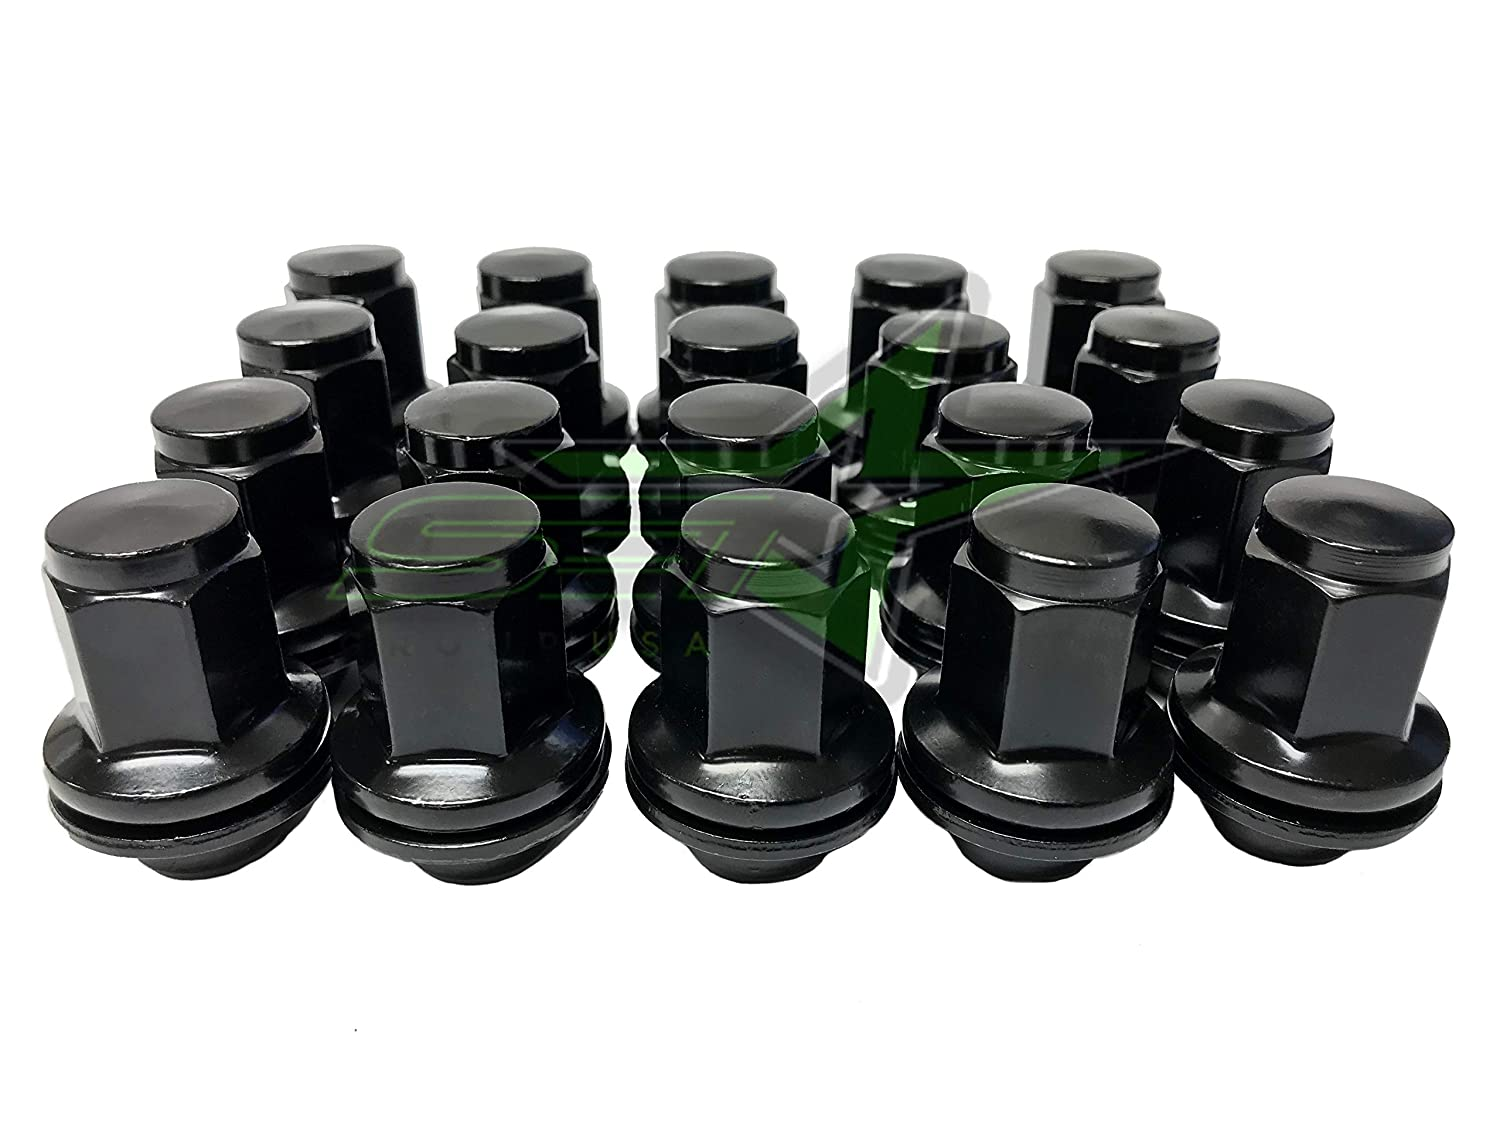 14x1.5 Black OEM Factory Mag Lug Nuts 14x1.5 Works with Toyota Tundra Sequoia Land Cruiser